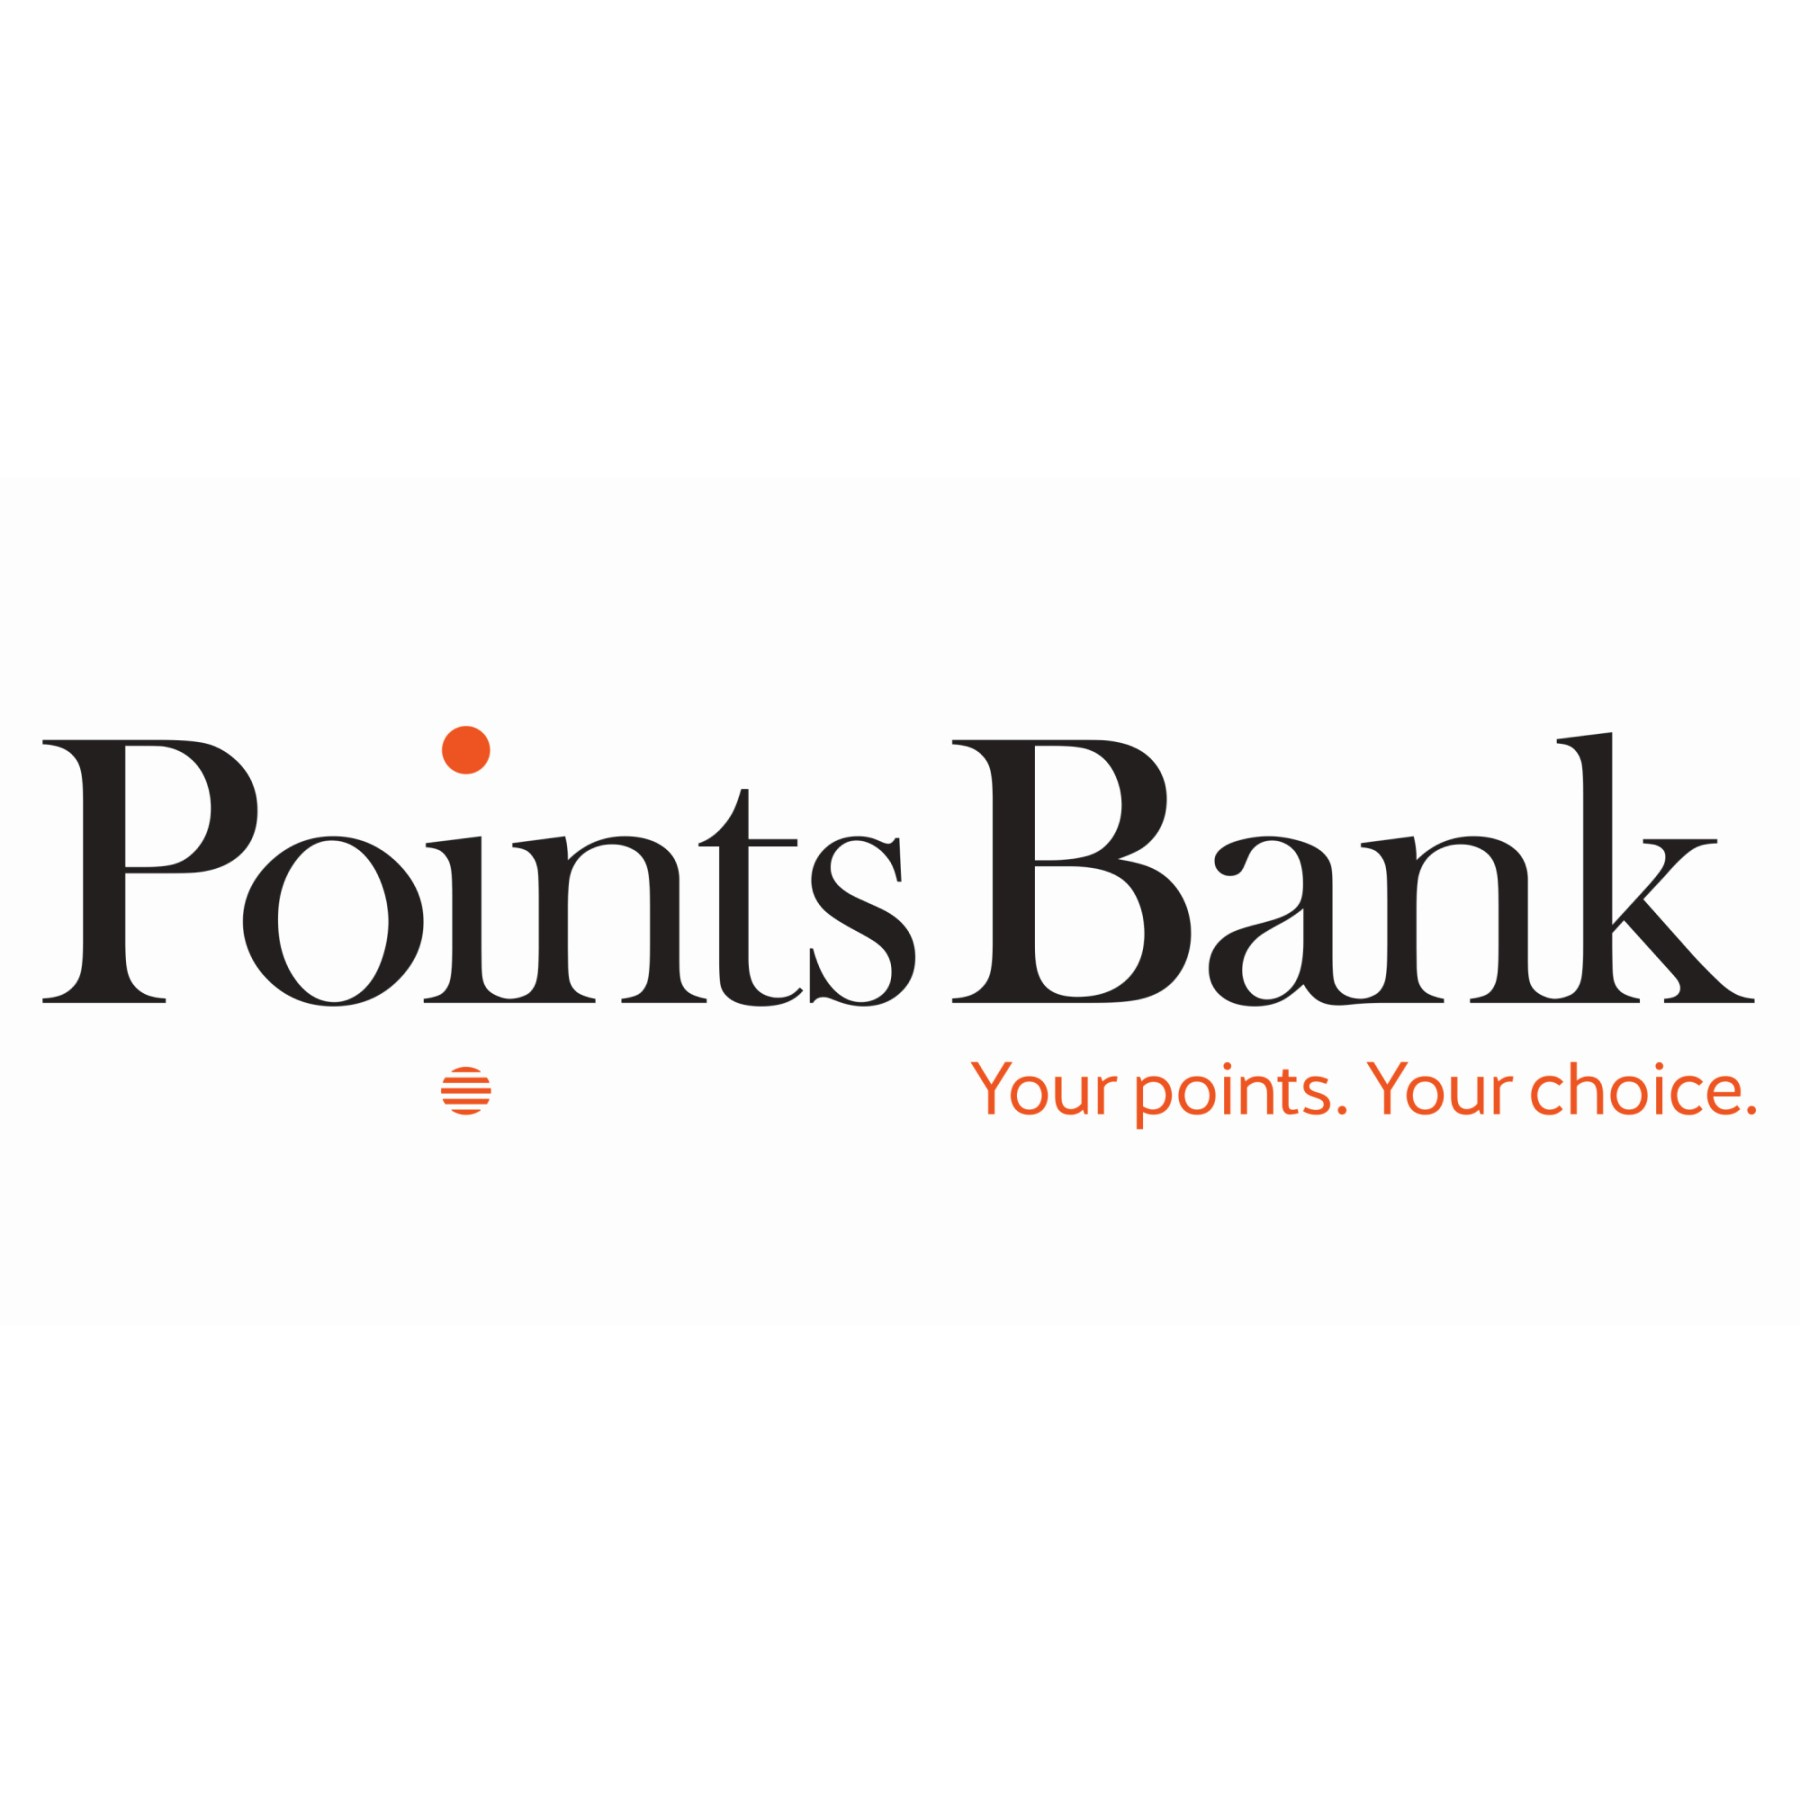 Pointsbank Square.jpg